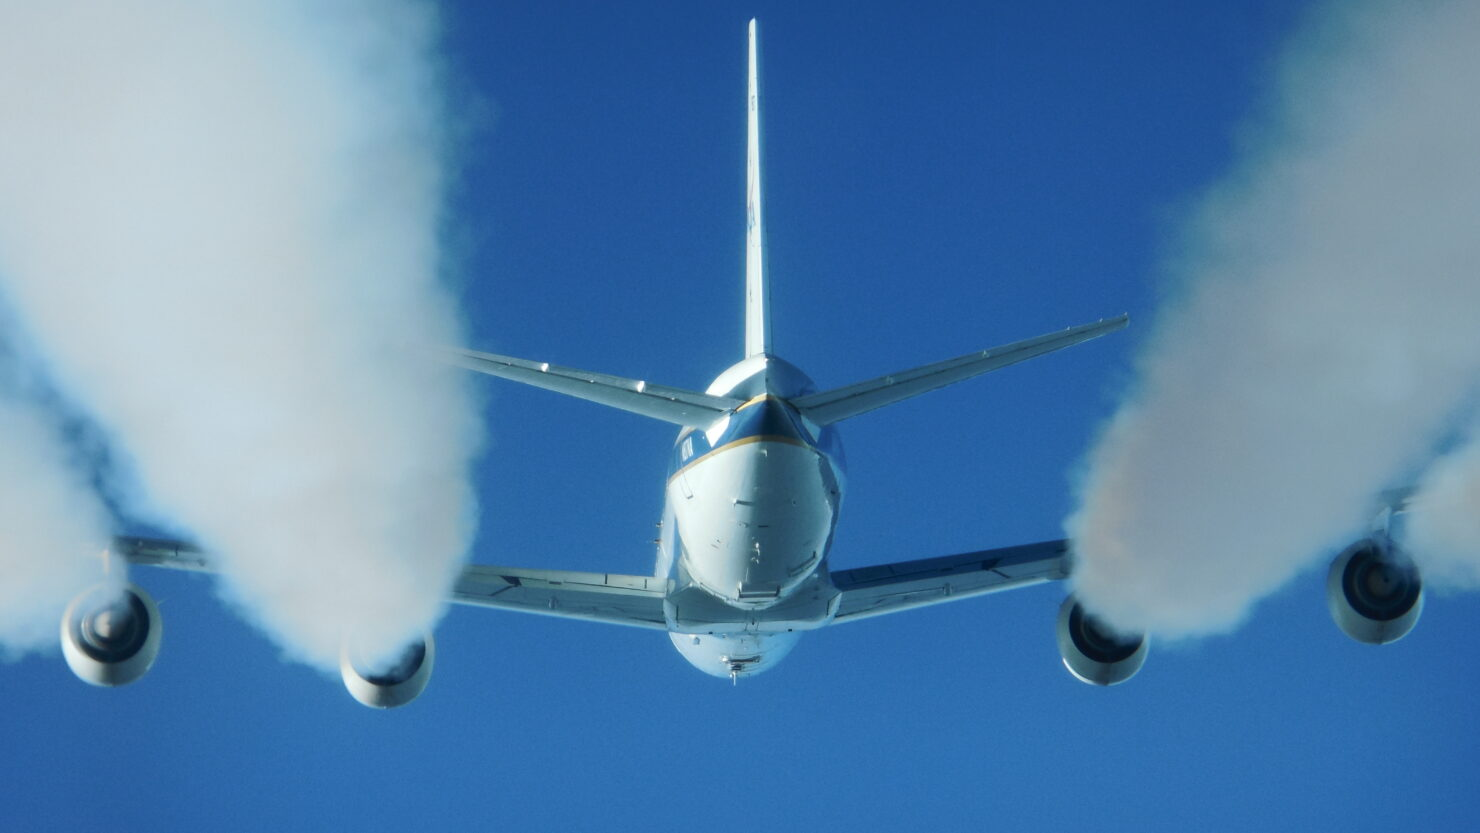 NASA researchers find that using biofuel in jet engines causes 70 percent less pollution